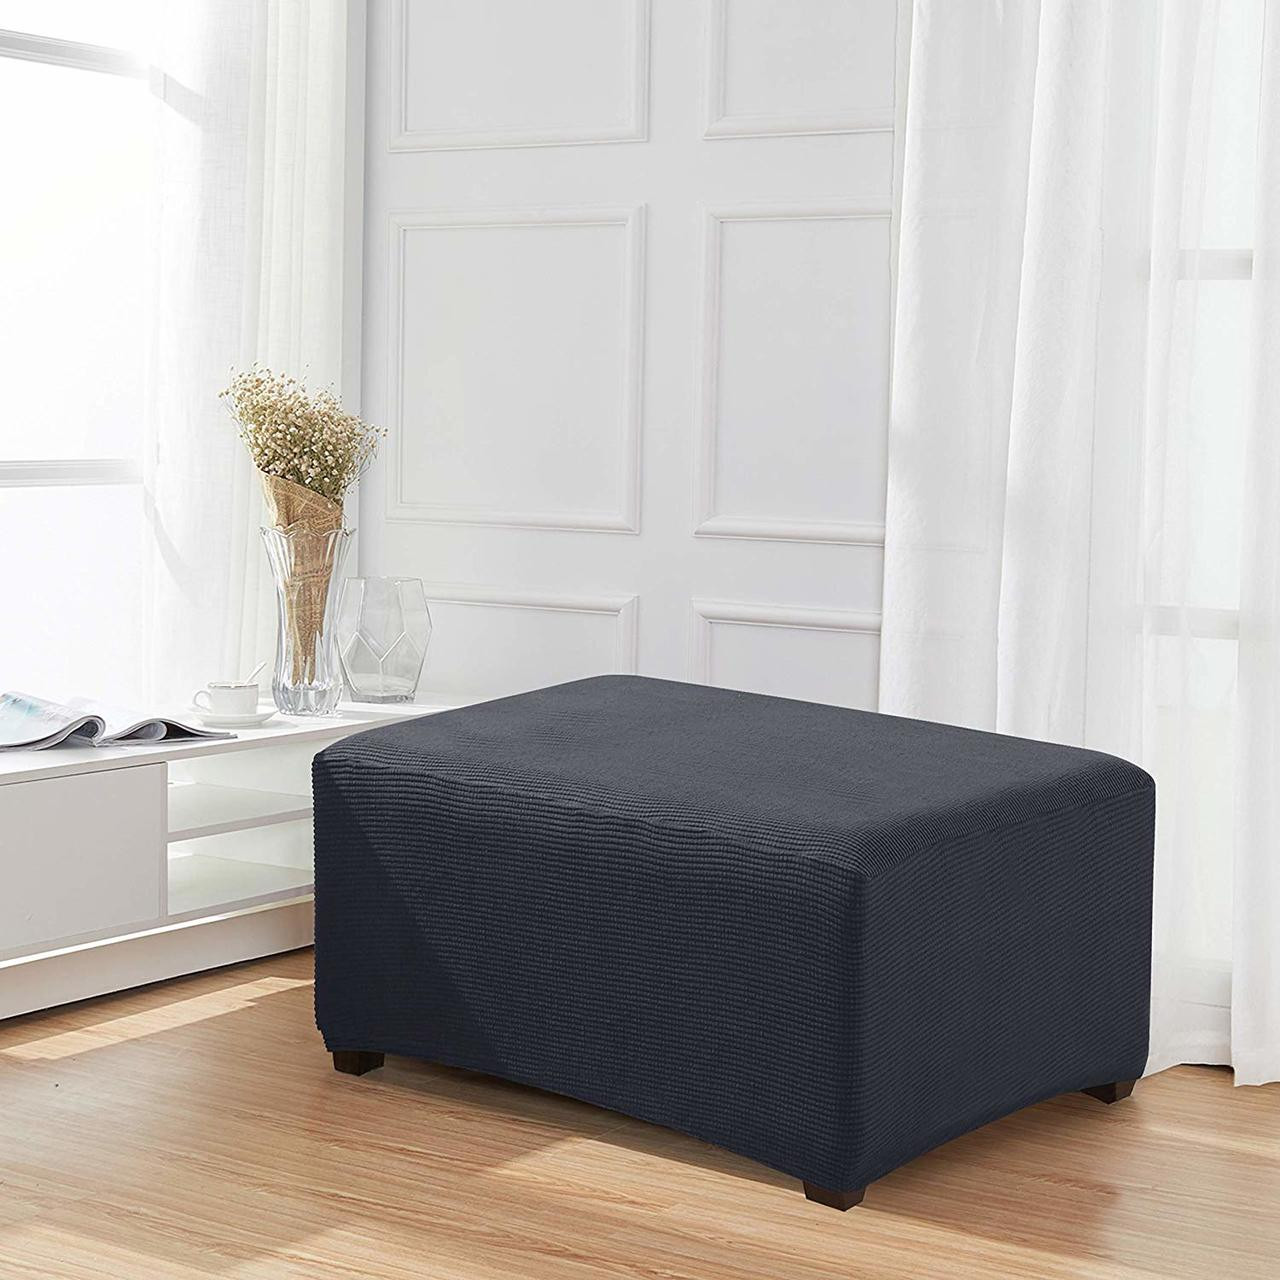 Grey Jacquard Polyester Stretch Fabric Oversized Ottoman Slipcover